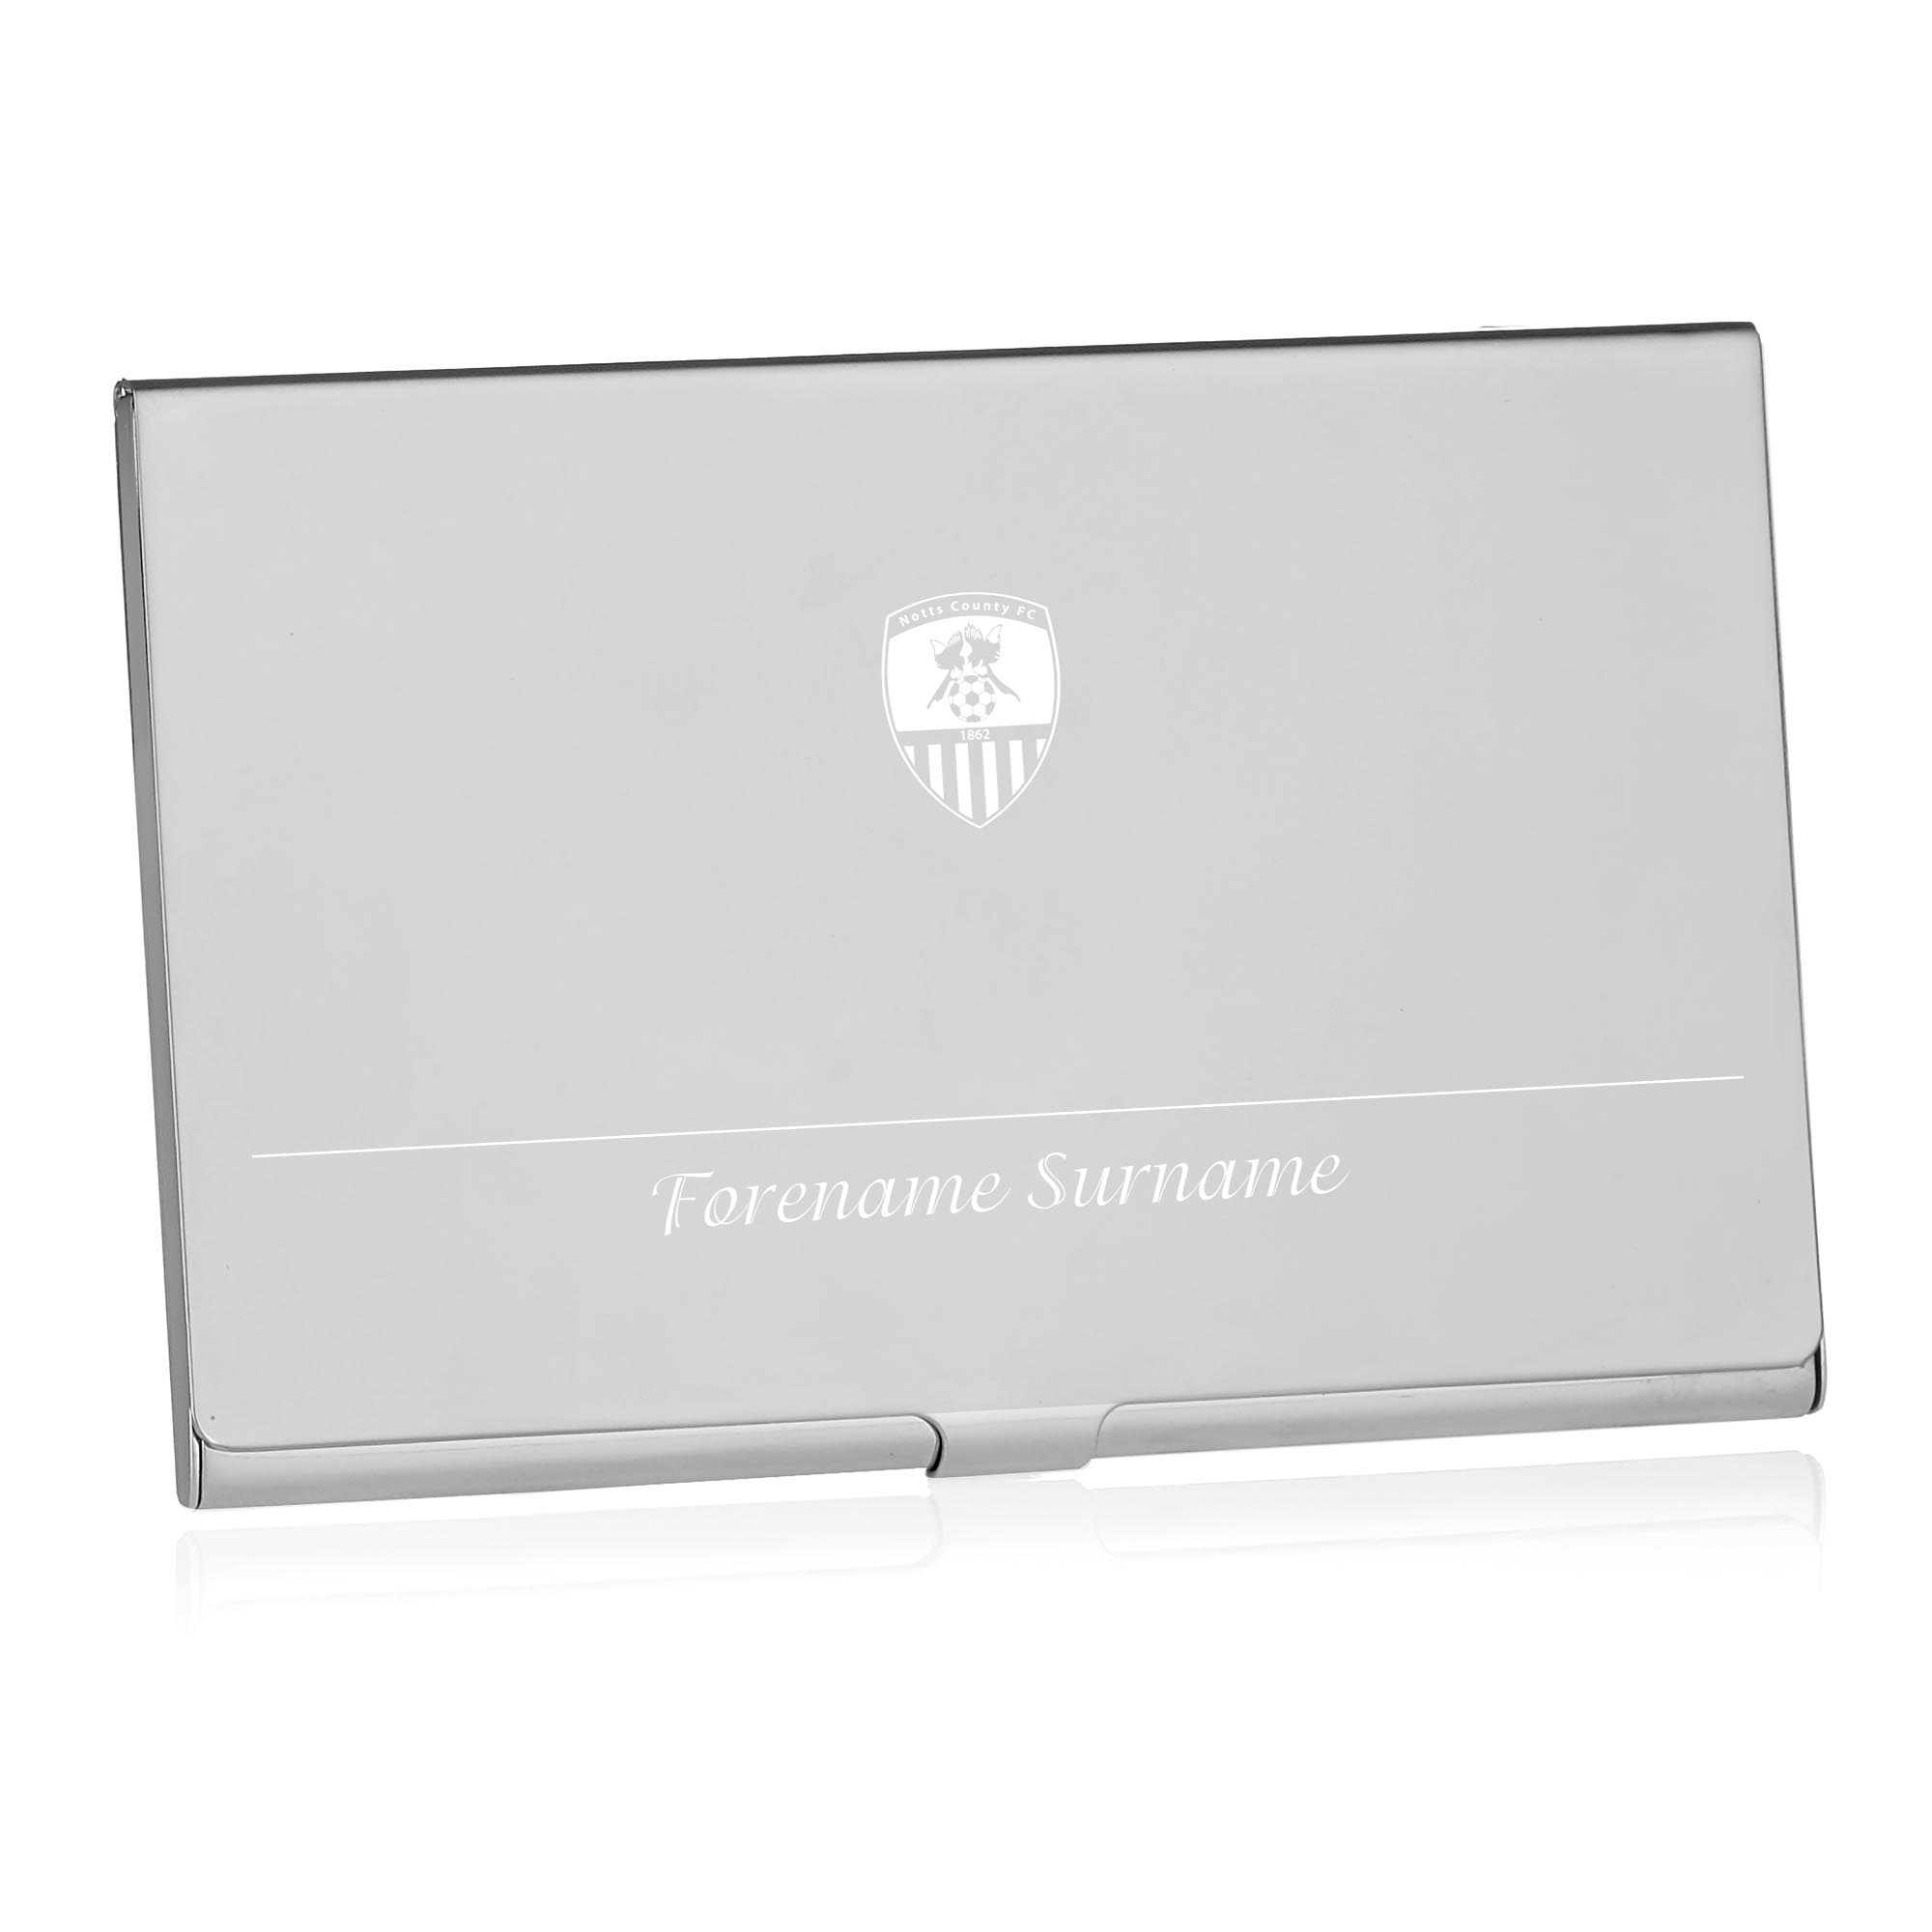 Notts County FC Executive Business Card Holder